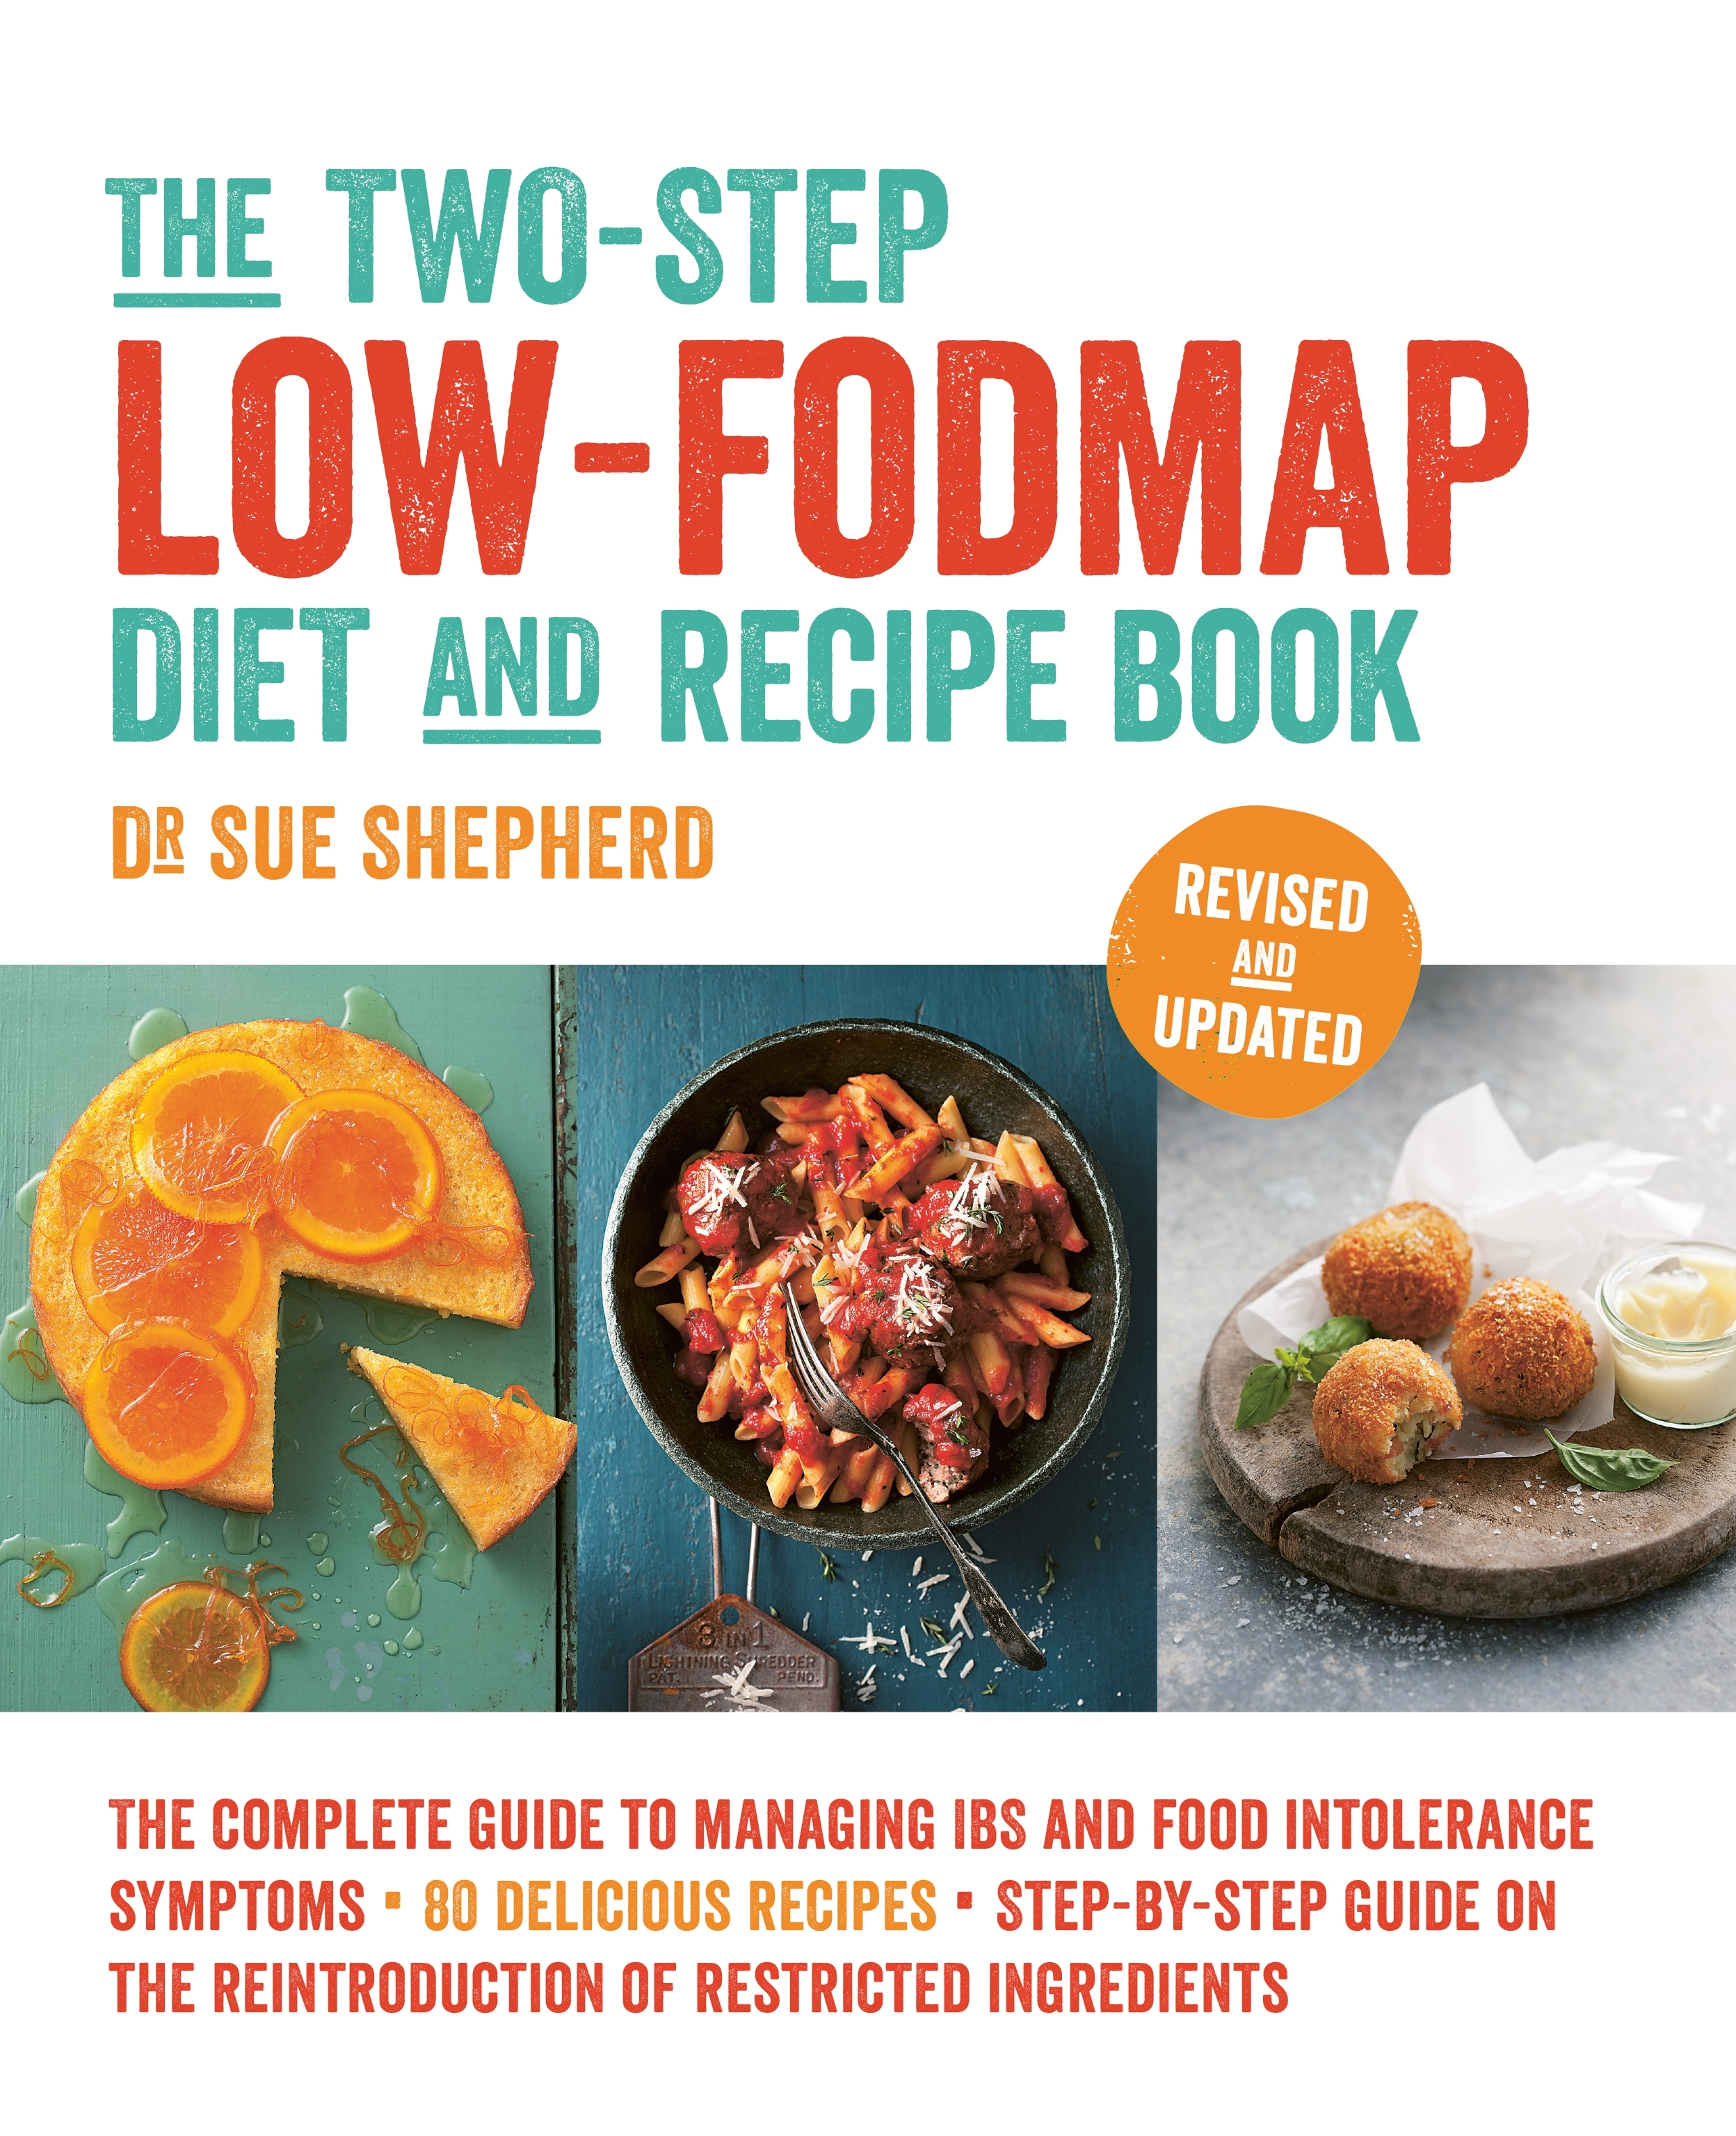 The Two-Step Low-FODMAP Diet and Recipe Book: Revised and Updated